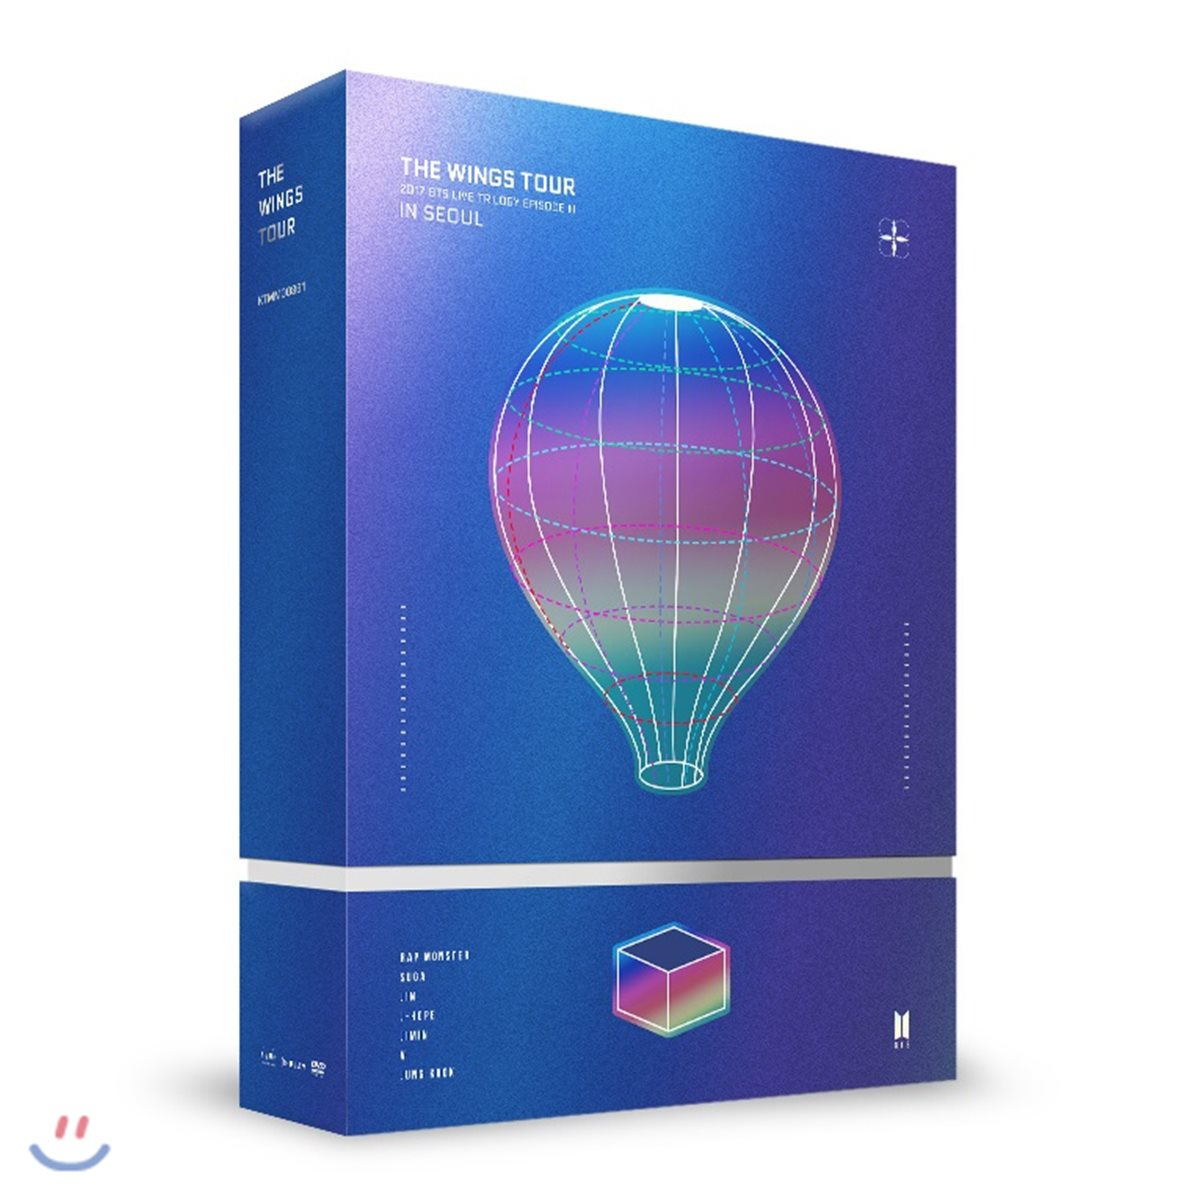 방탄소년단 (BTS) - 2017 BTS Live Trilogy EpiSode III The Wings Tour in Seoul Concert  DVD